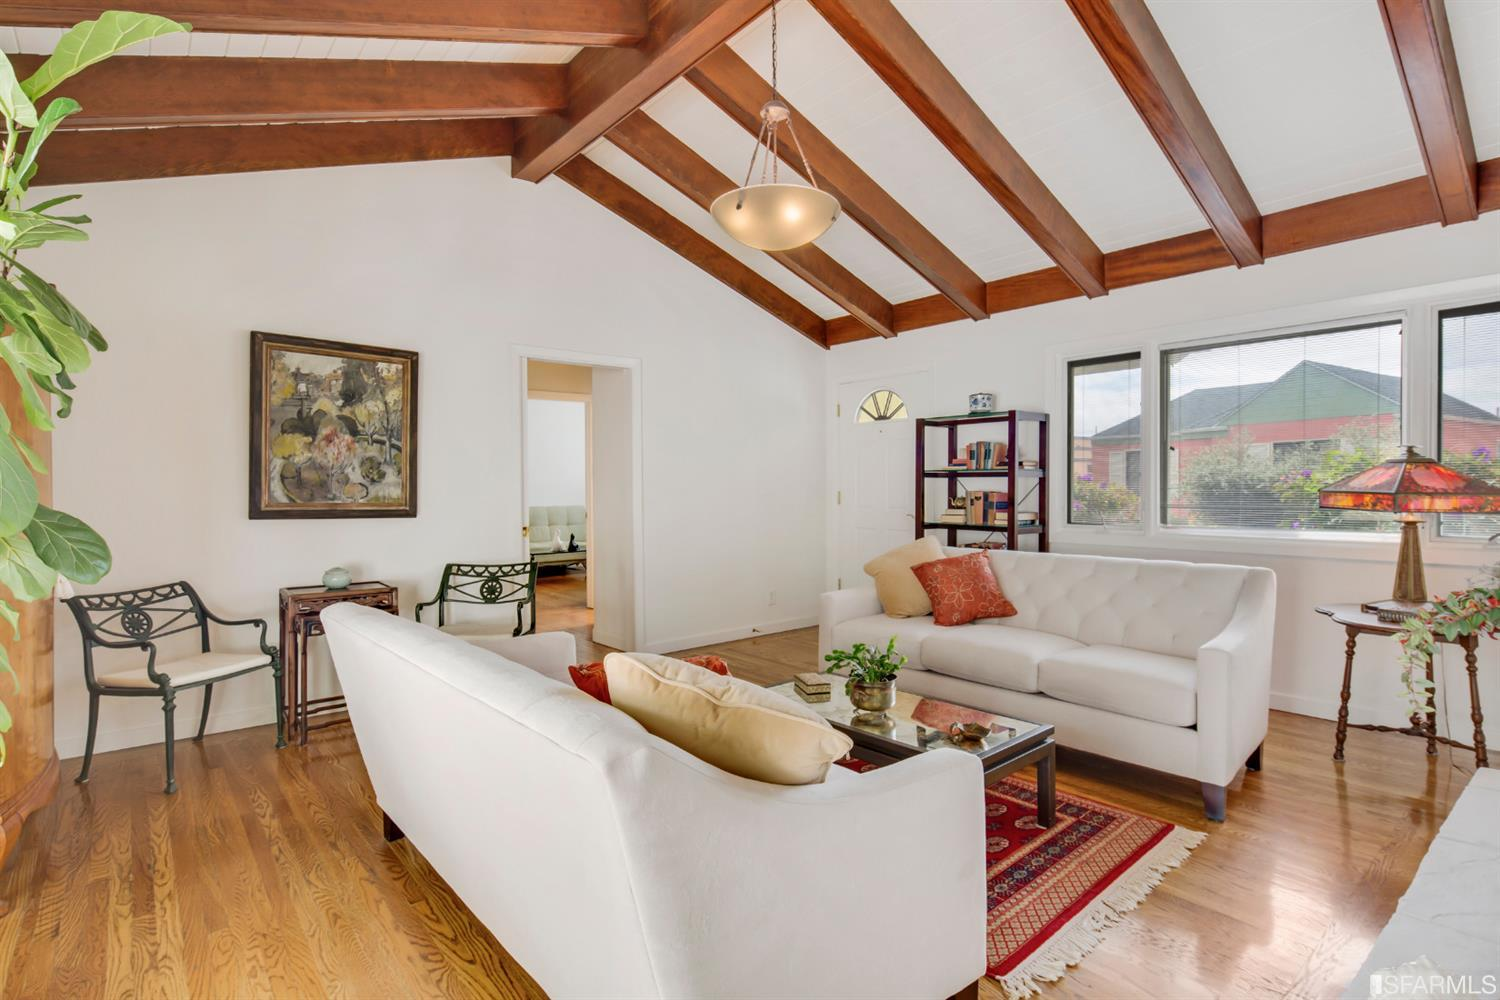 576 Los Palmos - Westwood HighlandsSold for $1,110,000